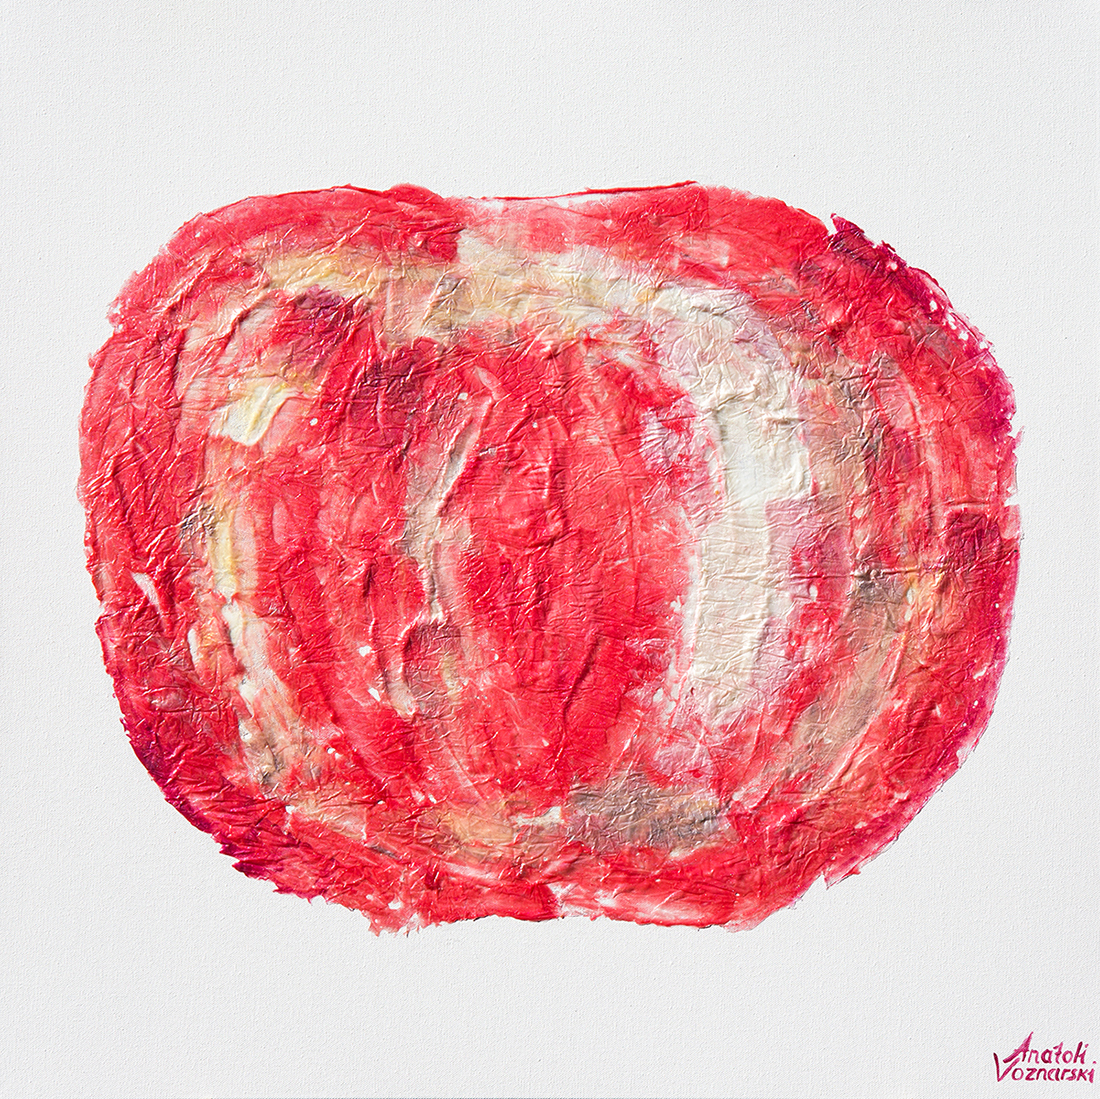 apple painting, apple abstract, contemporary apple, apple pop art, apple voznarski, apple acrylic, apple textured, office painting, red apple,